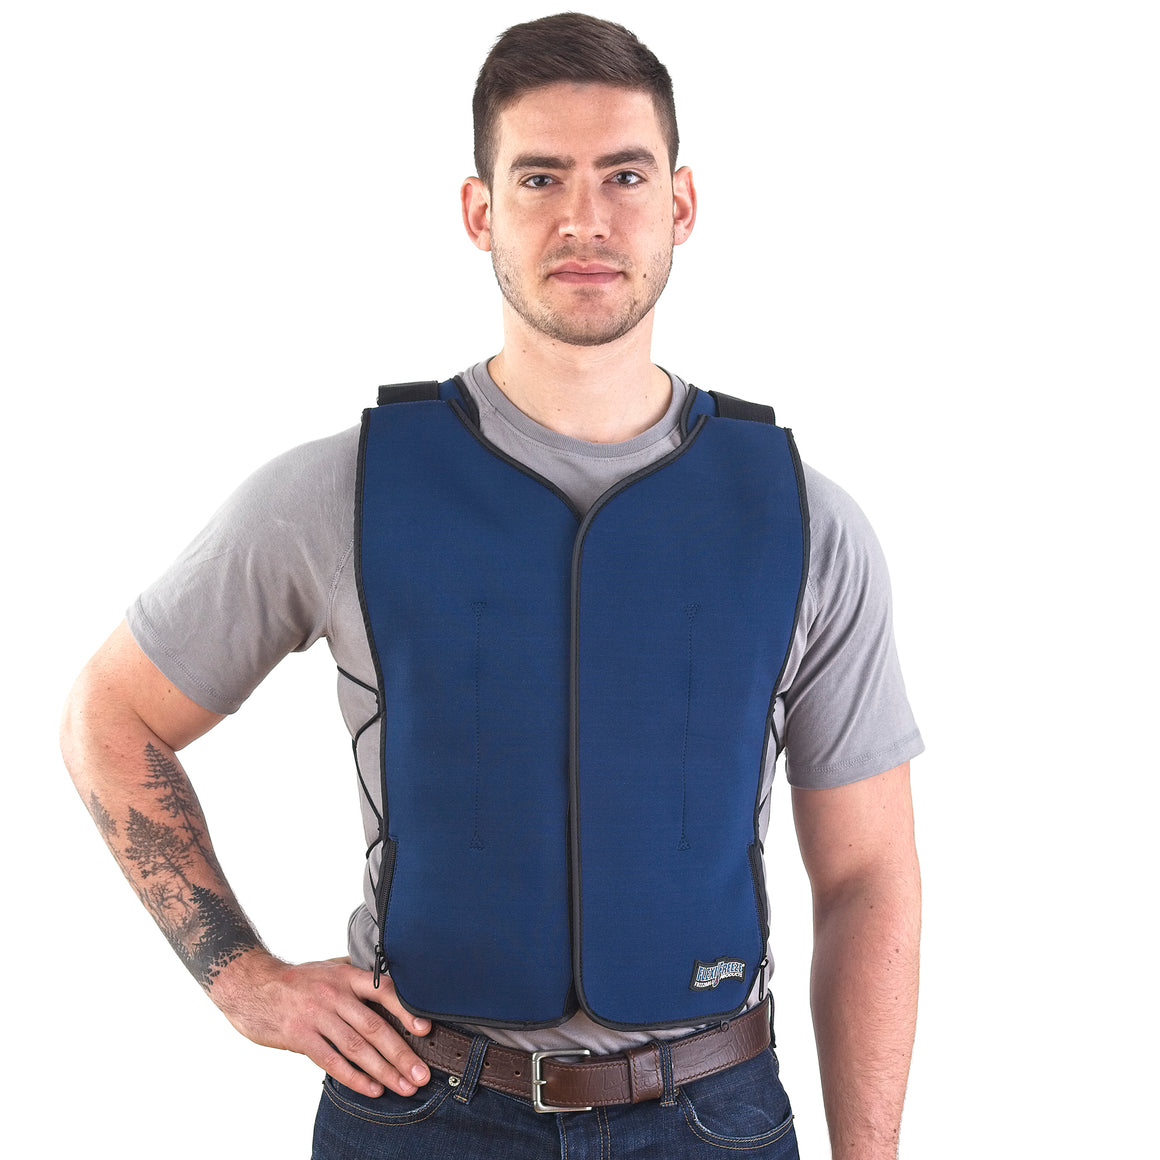 FlexiFreeze Ice Vest - Zipper Front